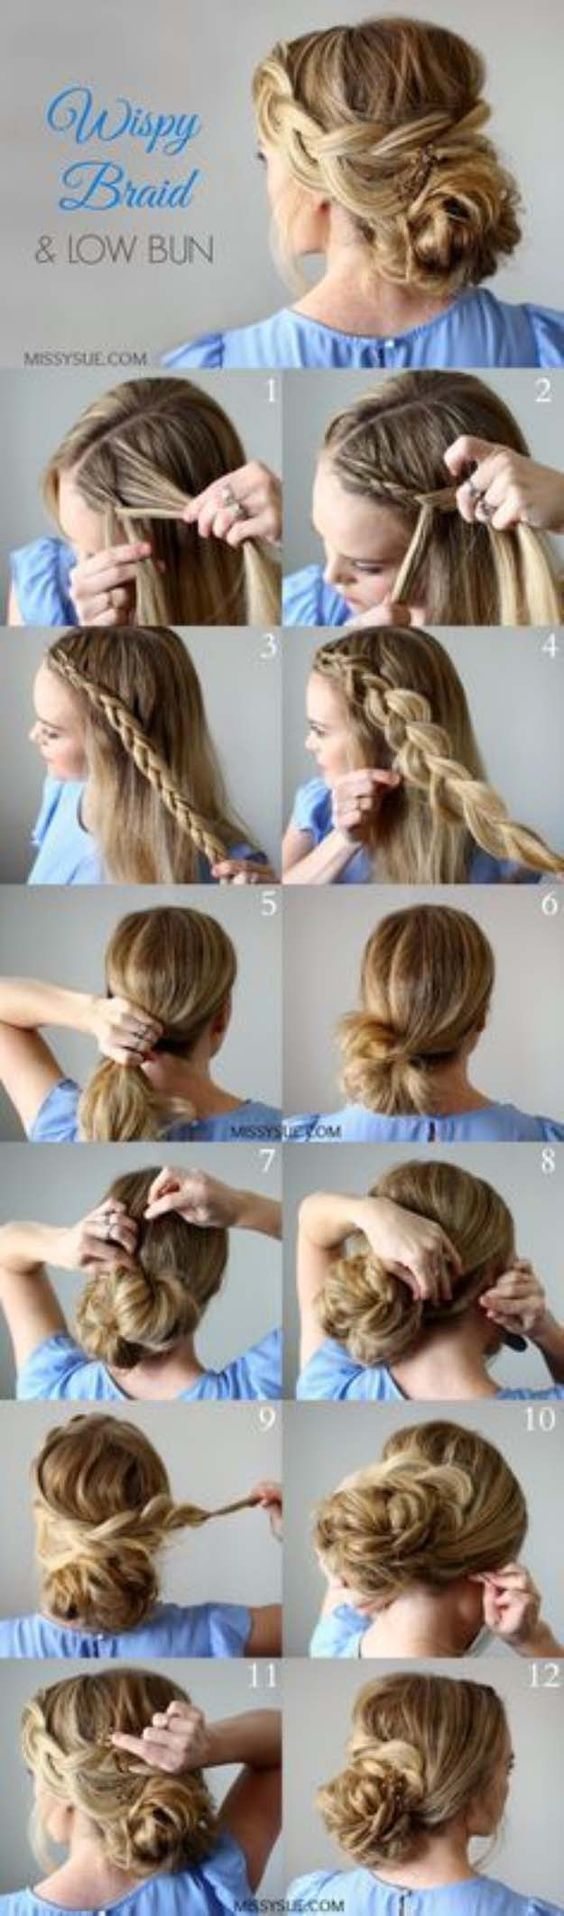 Best hairstyles for brides wispy braid and low bun amazing hair